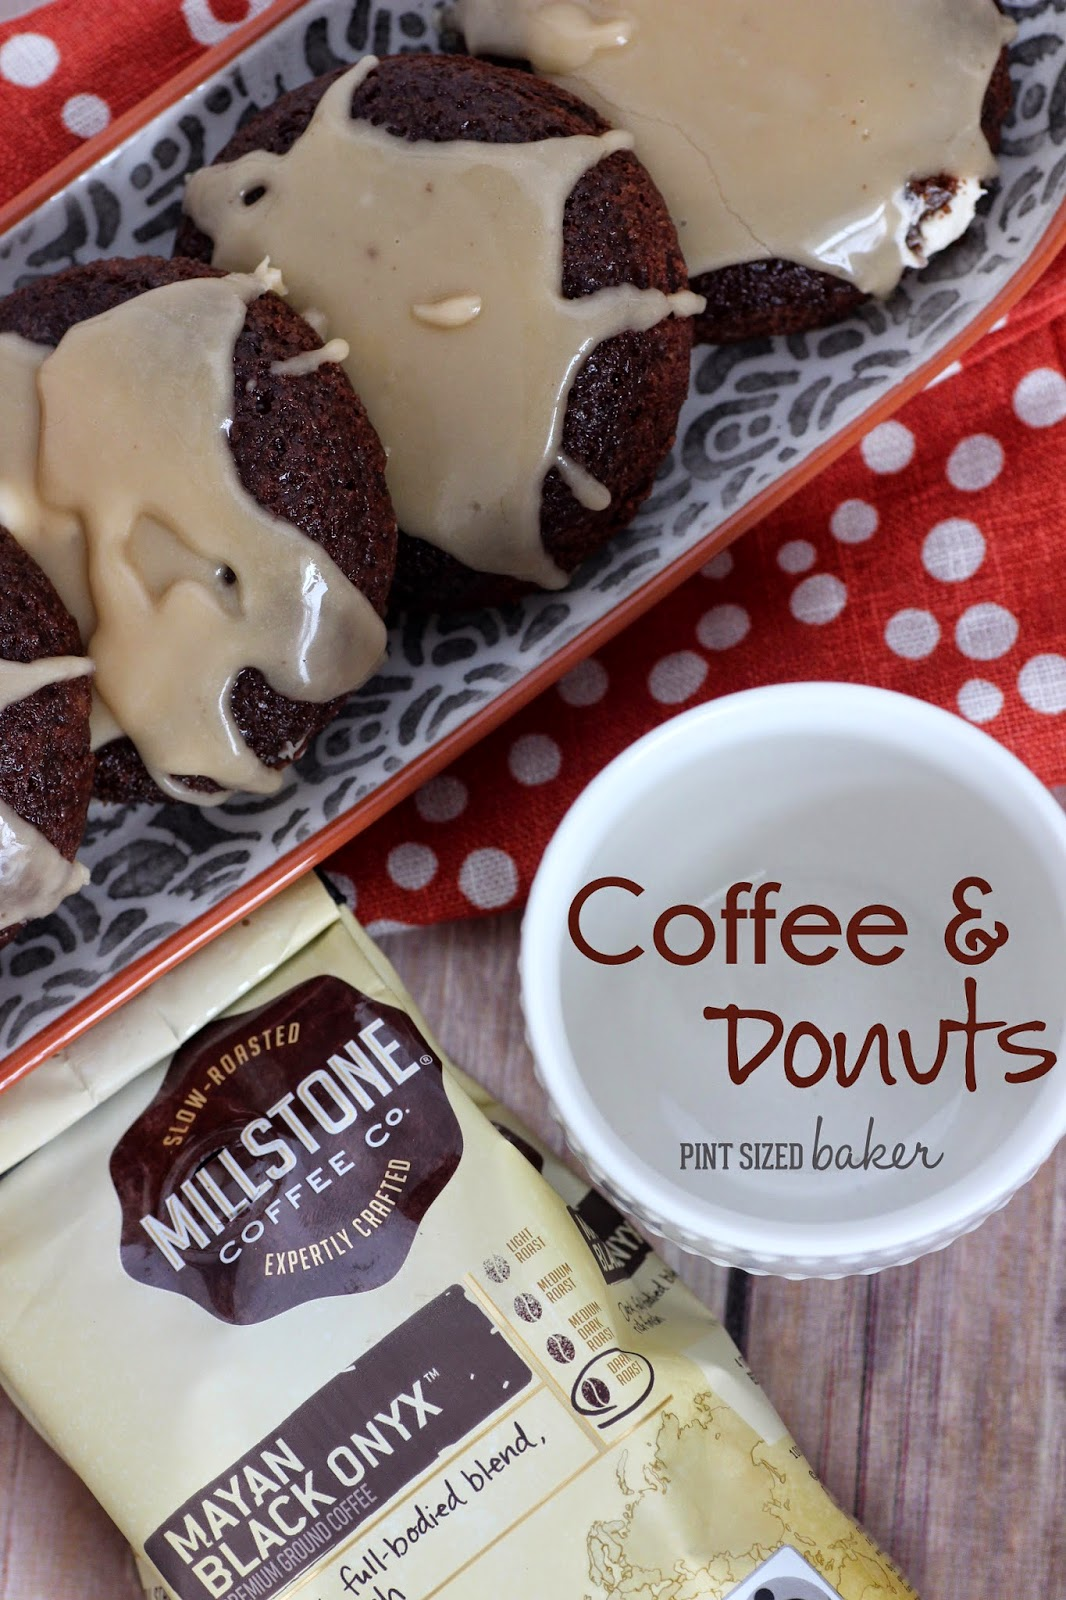 Grab a Coffee and Donut in the morning and have a Great Day! #MillstoneCoffee